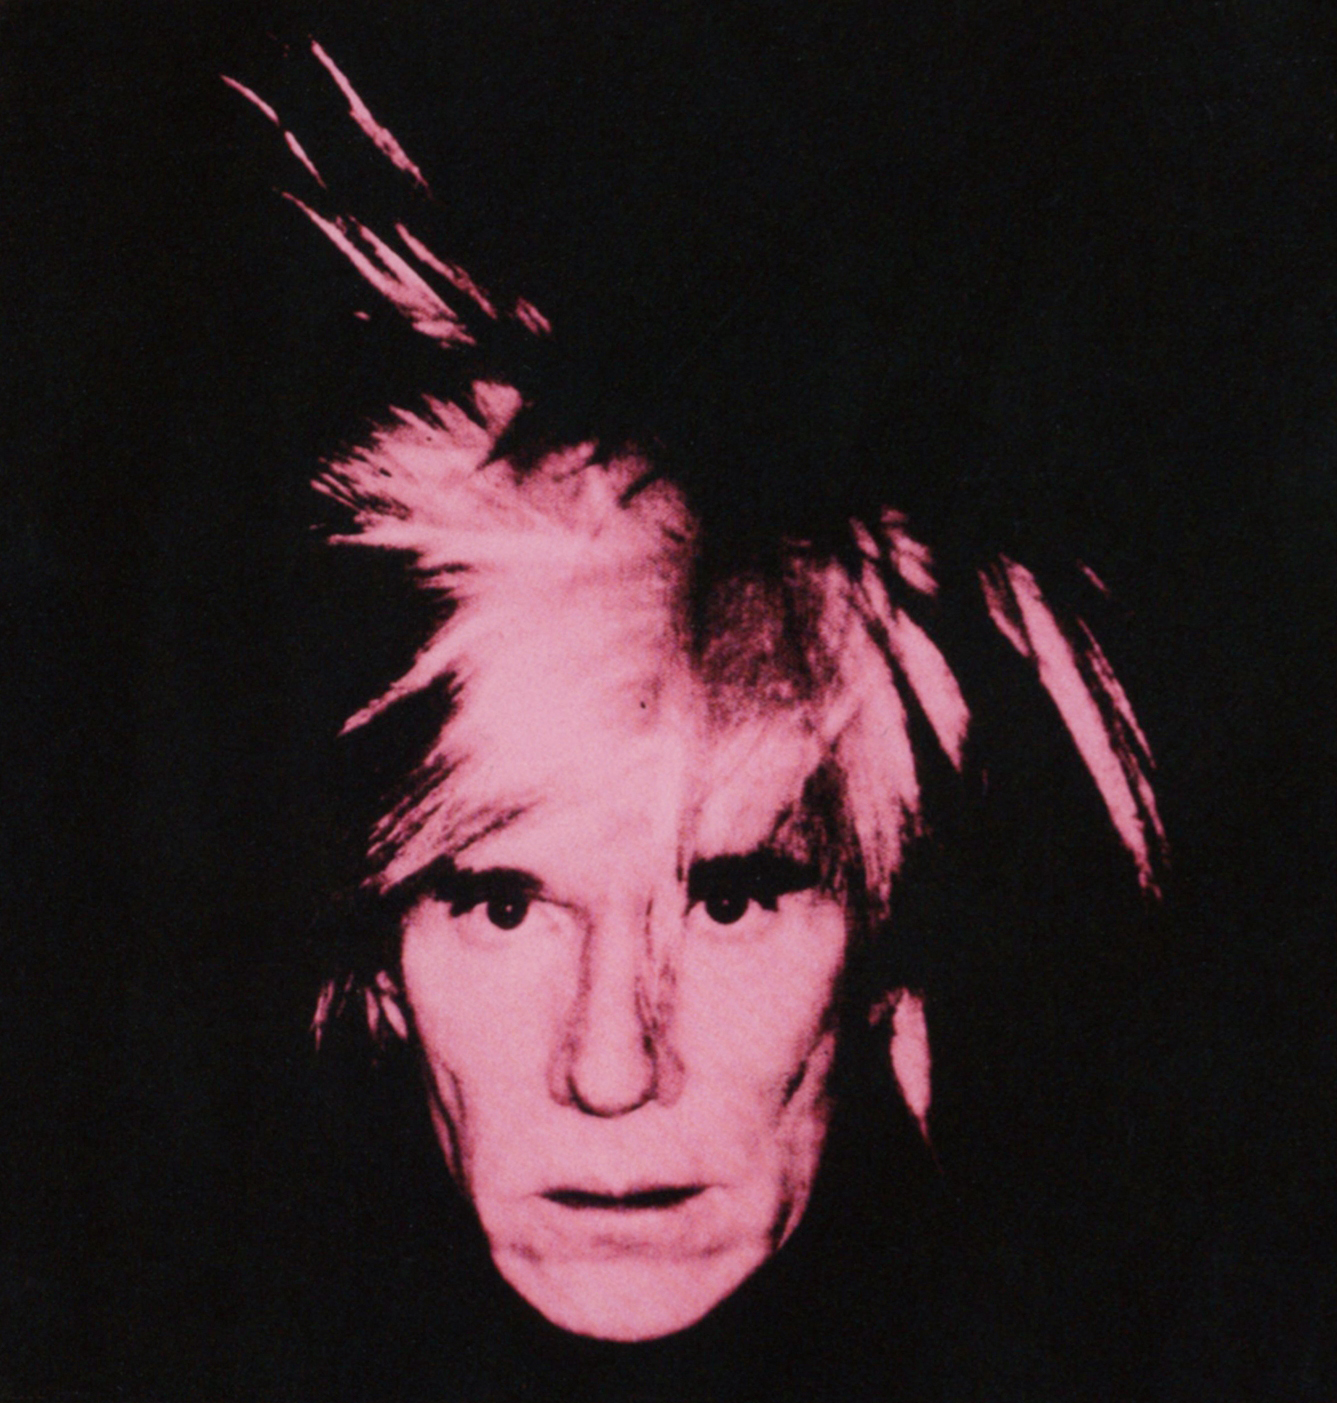 """Art is for everyone."" - Andy Warhol"